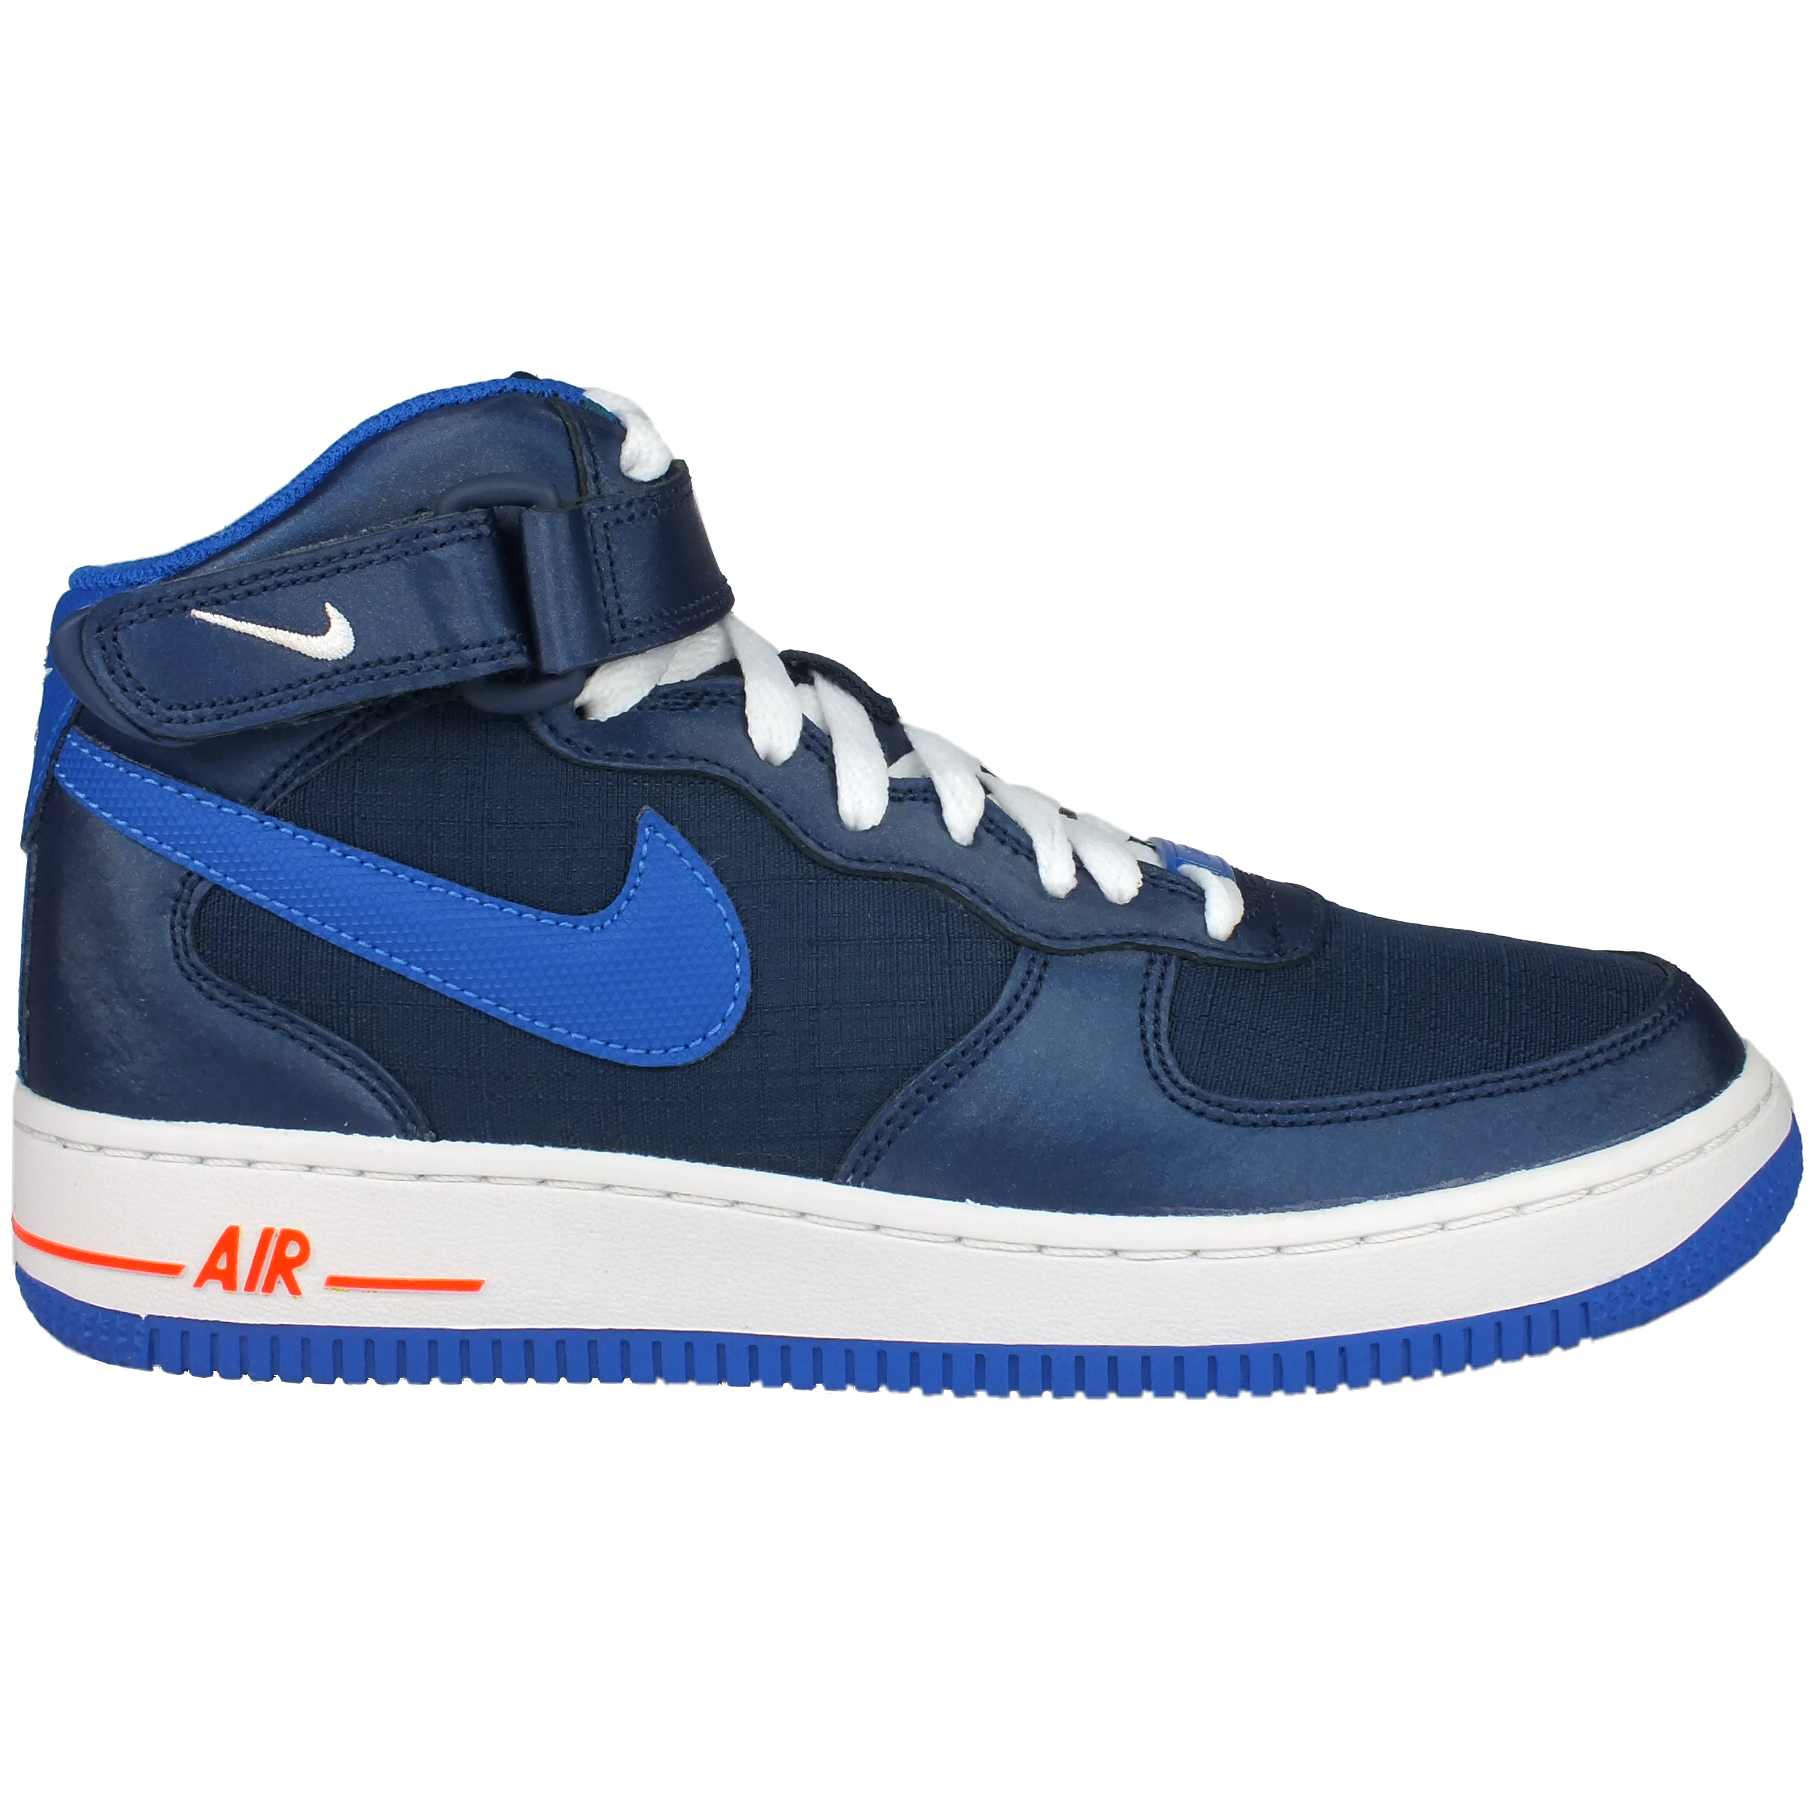 nike air force 1 mid 06 gs schuhe turnschuhe sneaker. Black Bedroom Furniture Sets. Home Design Ideas